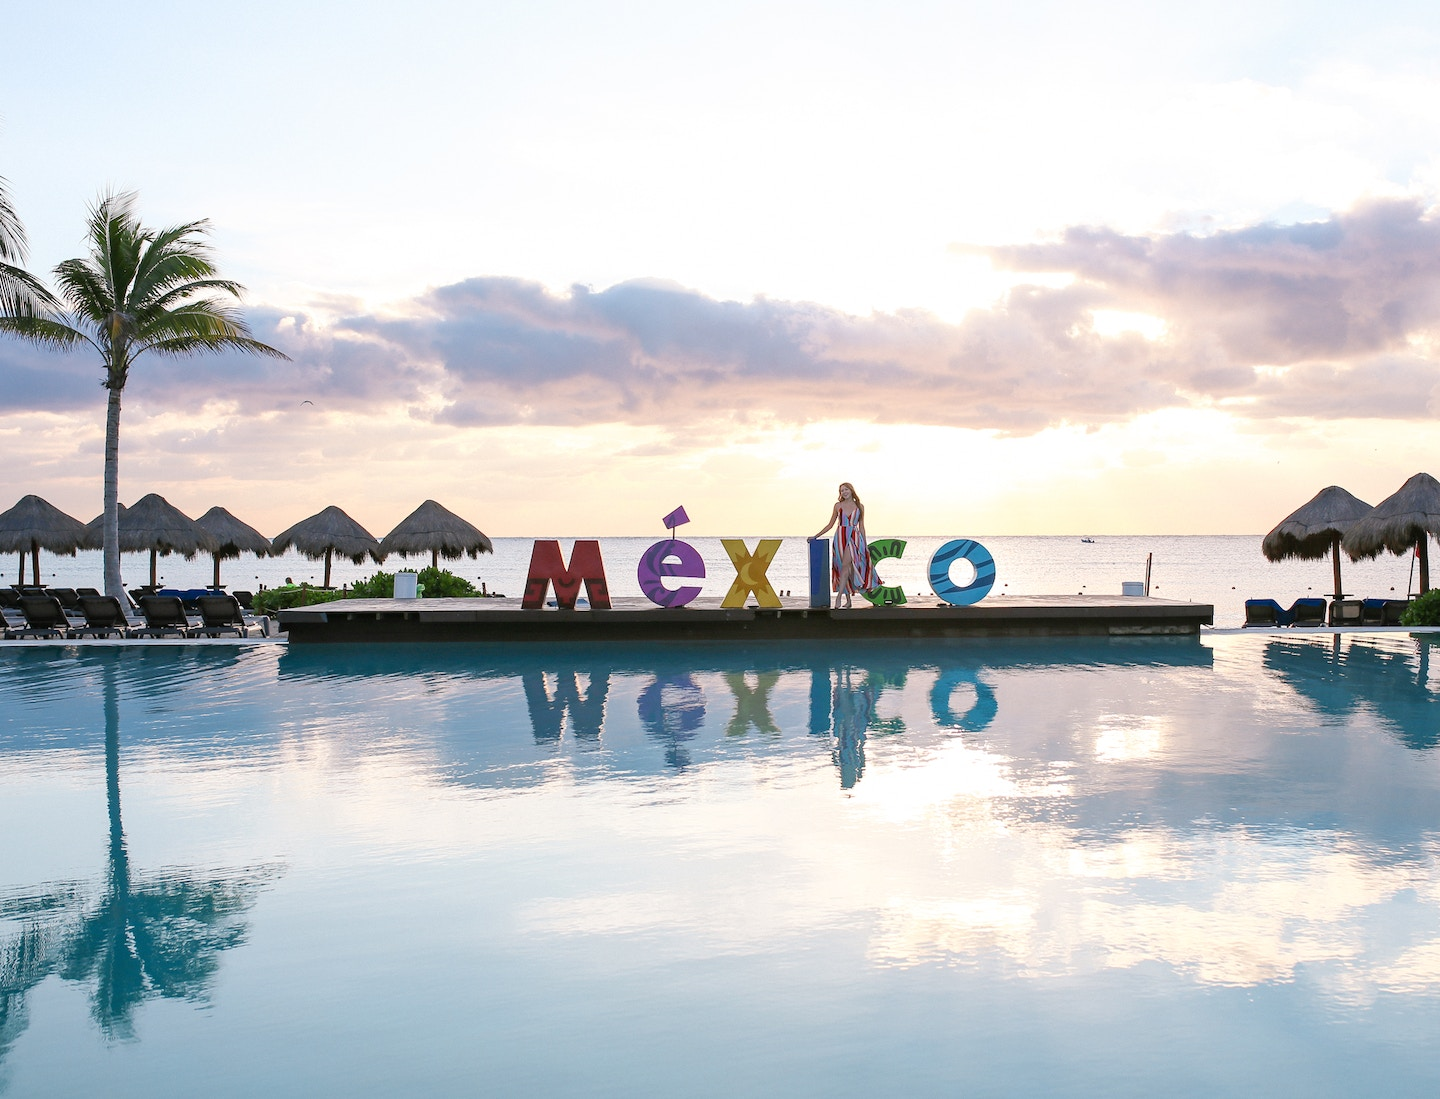 Ocean Riviera Paradise Review: Sharing my experience at this 5 star all-inclusive resort in Playa del Carmen, Mexico. From gourmet gluten-free food to gorgeous pools, rooms and beaches, we had a great time at this resort.